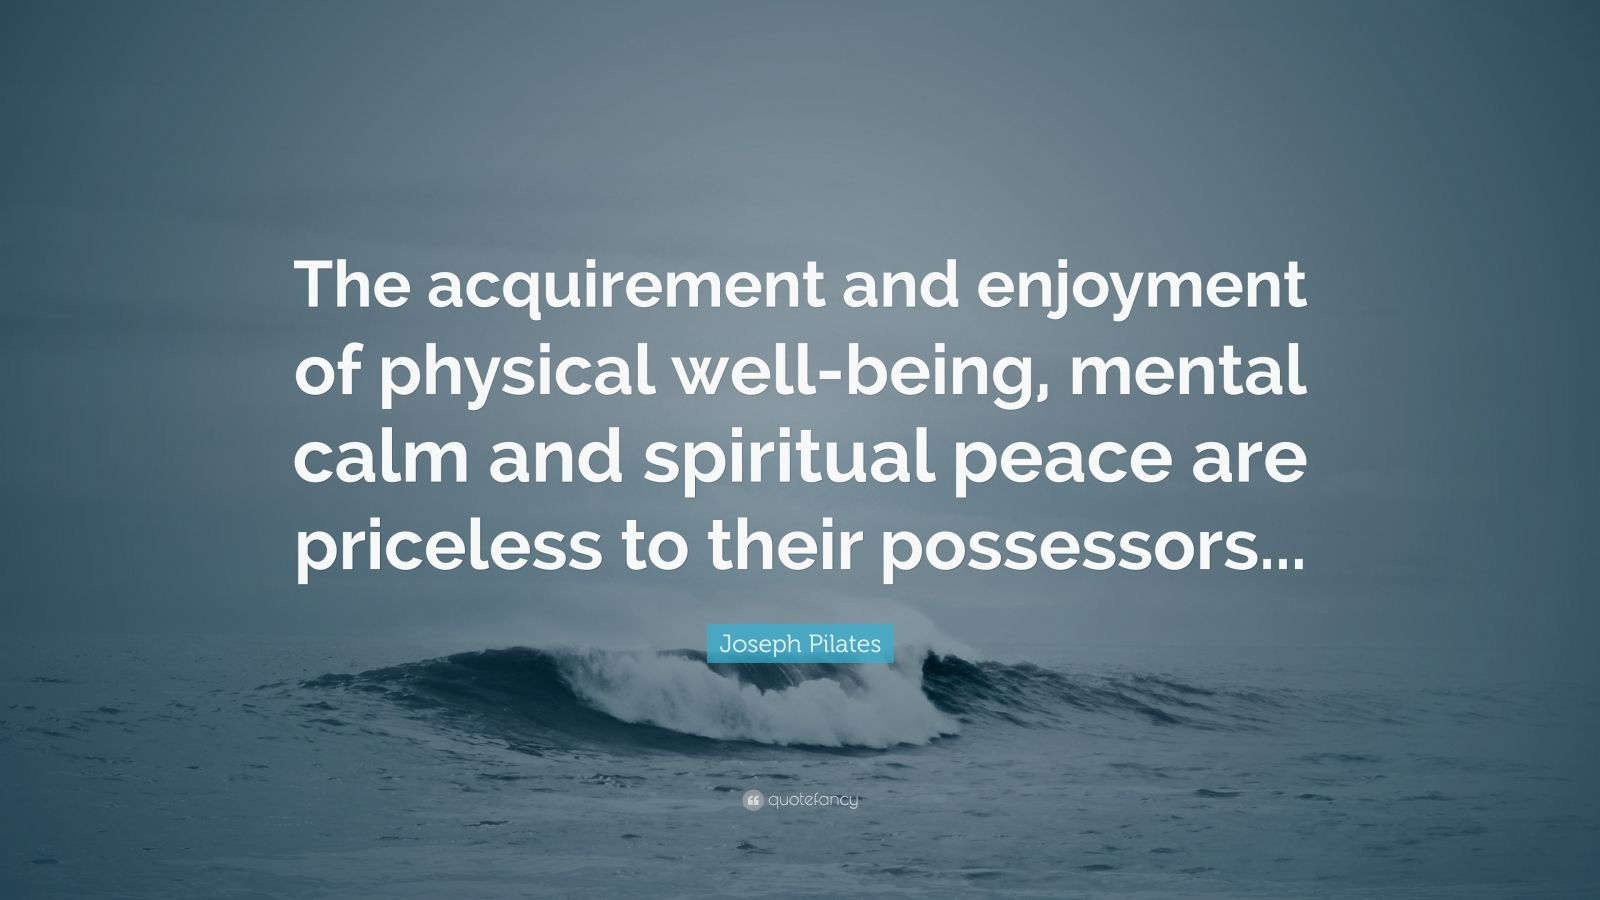 """Joseph Pilates Quote: """"The acquirement and enjoyment of physical well-being, mental calm and spiritual peace are priceless to their possessors..."""""""